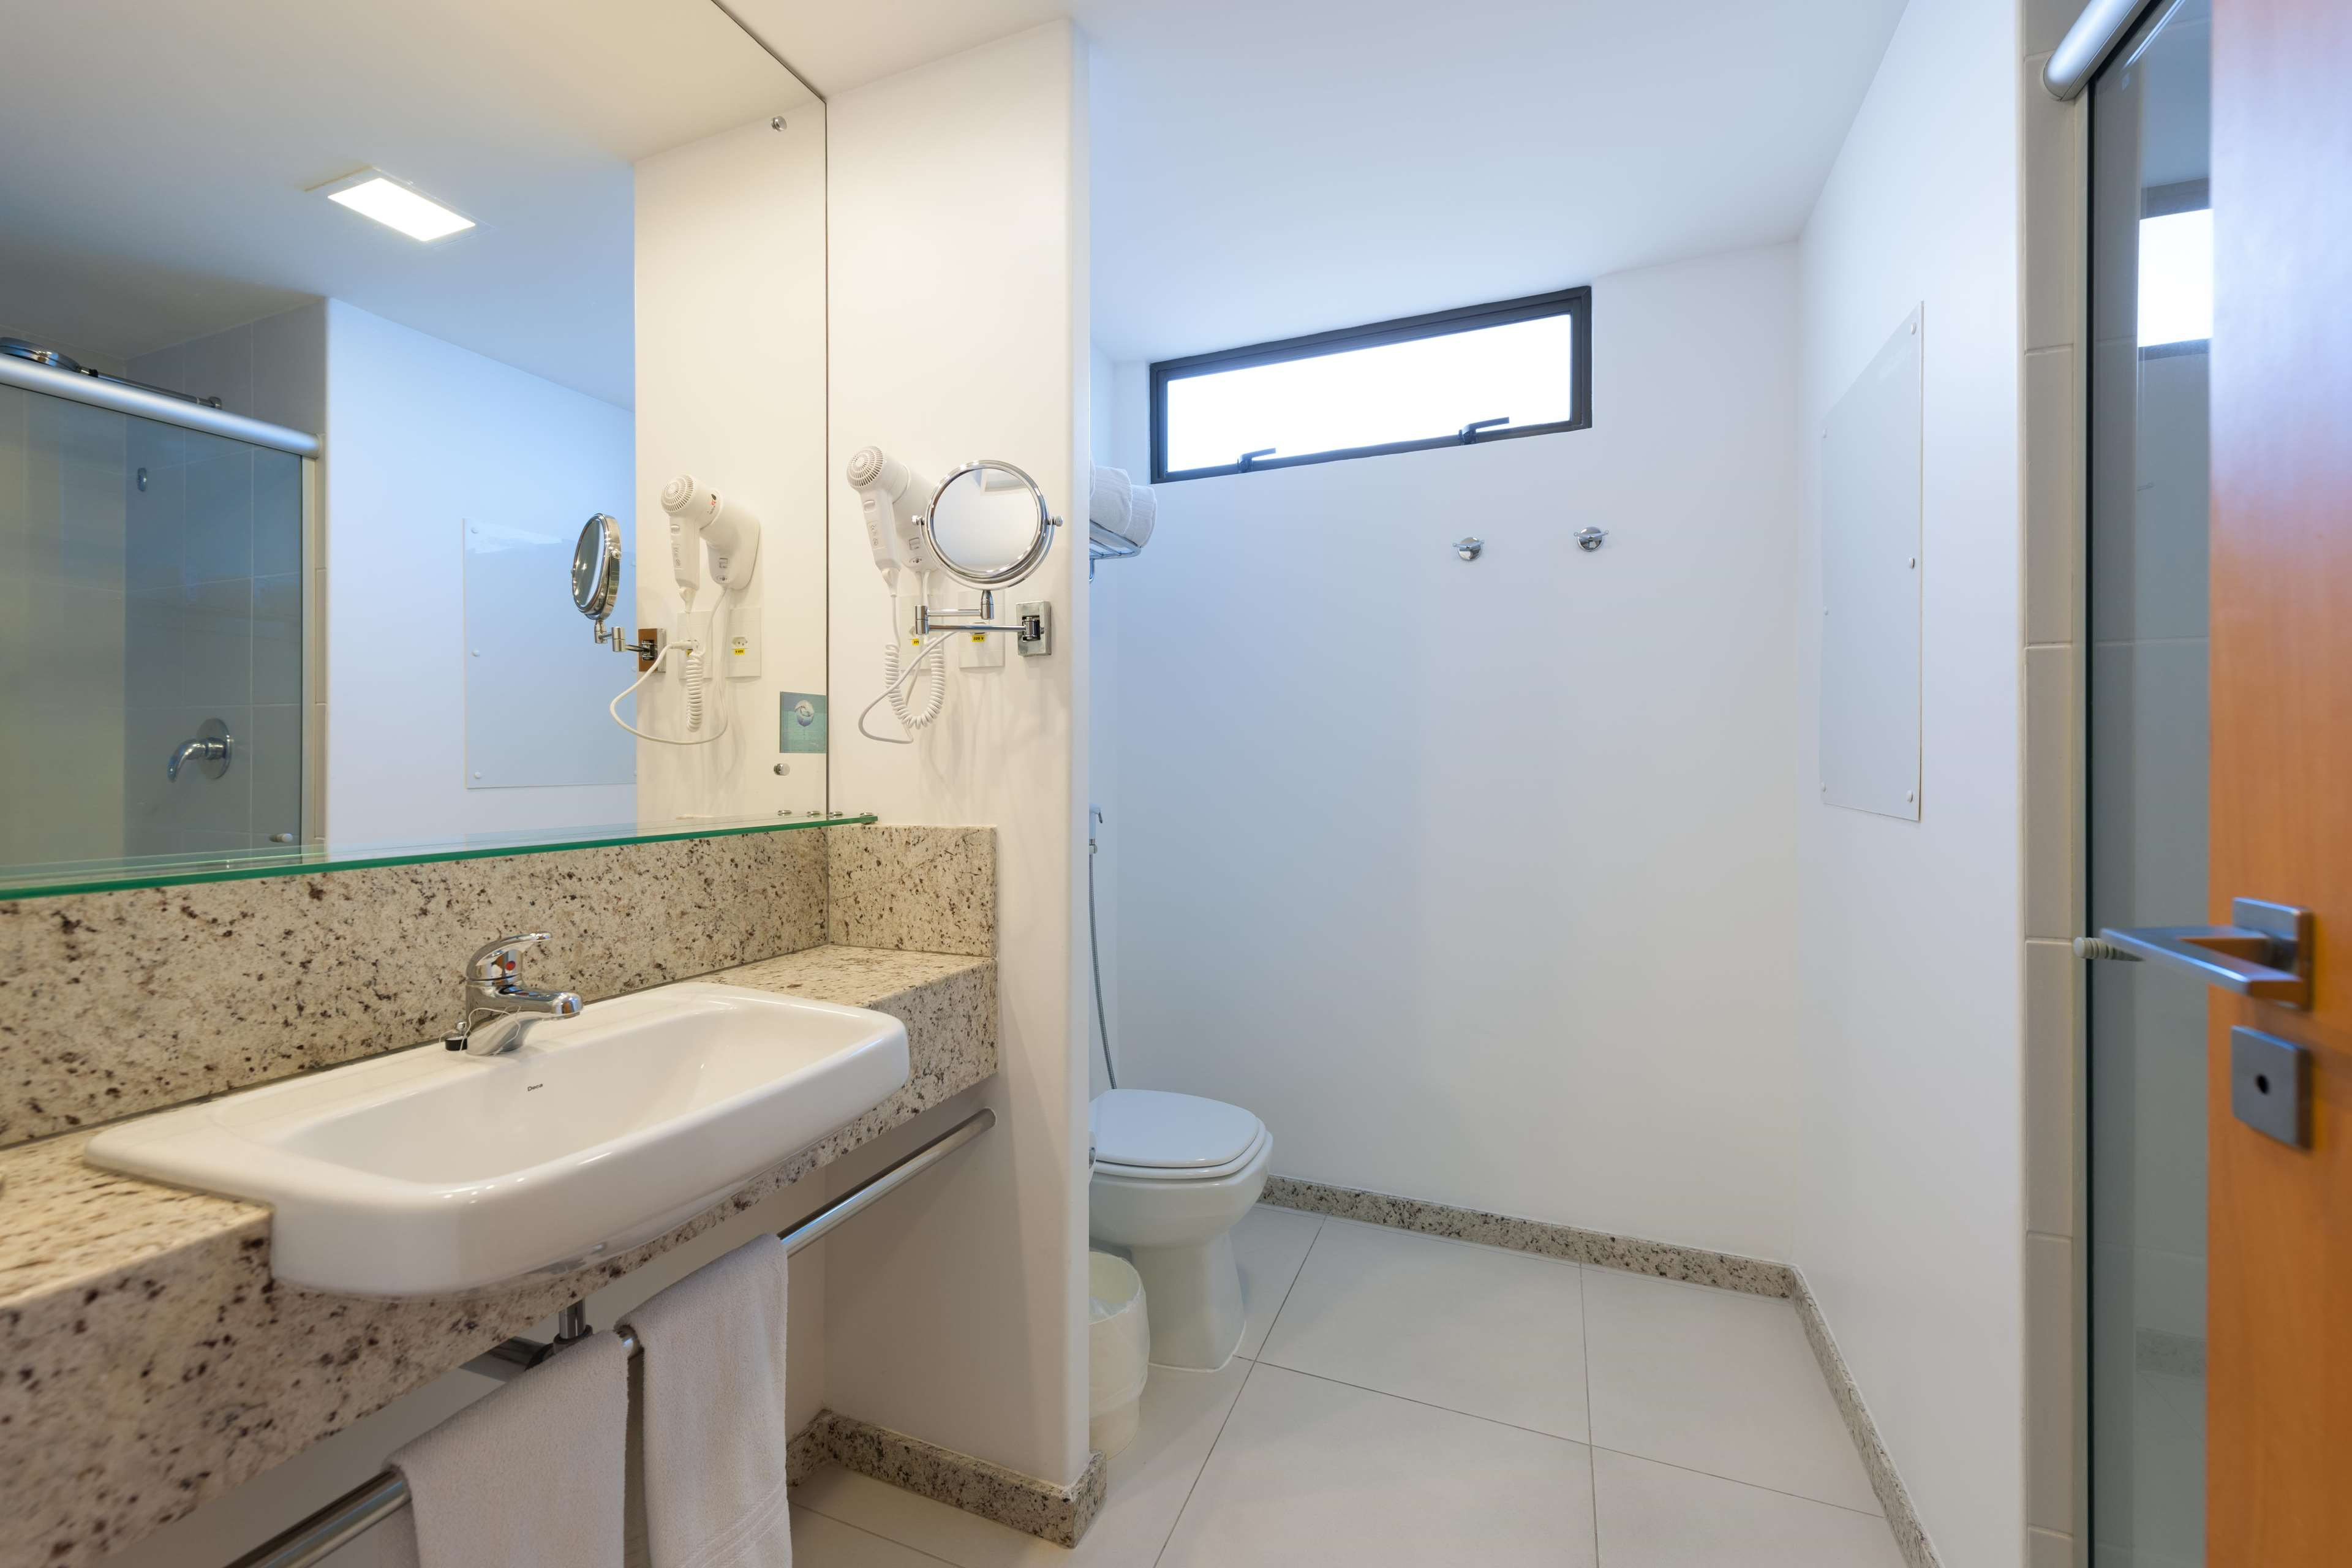 Images Best Western Premier Maceio